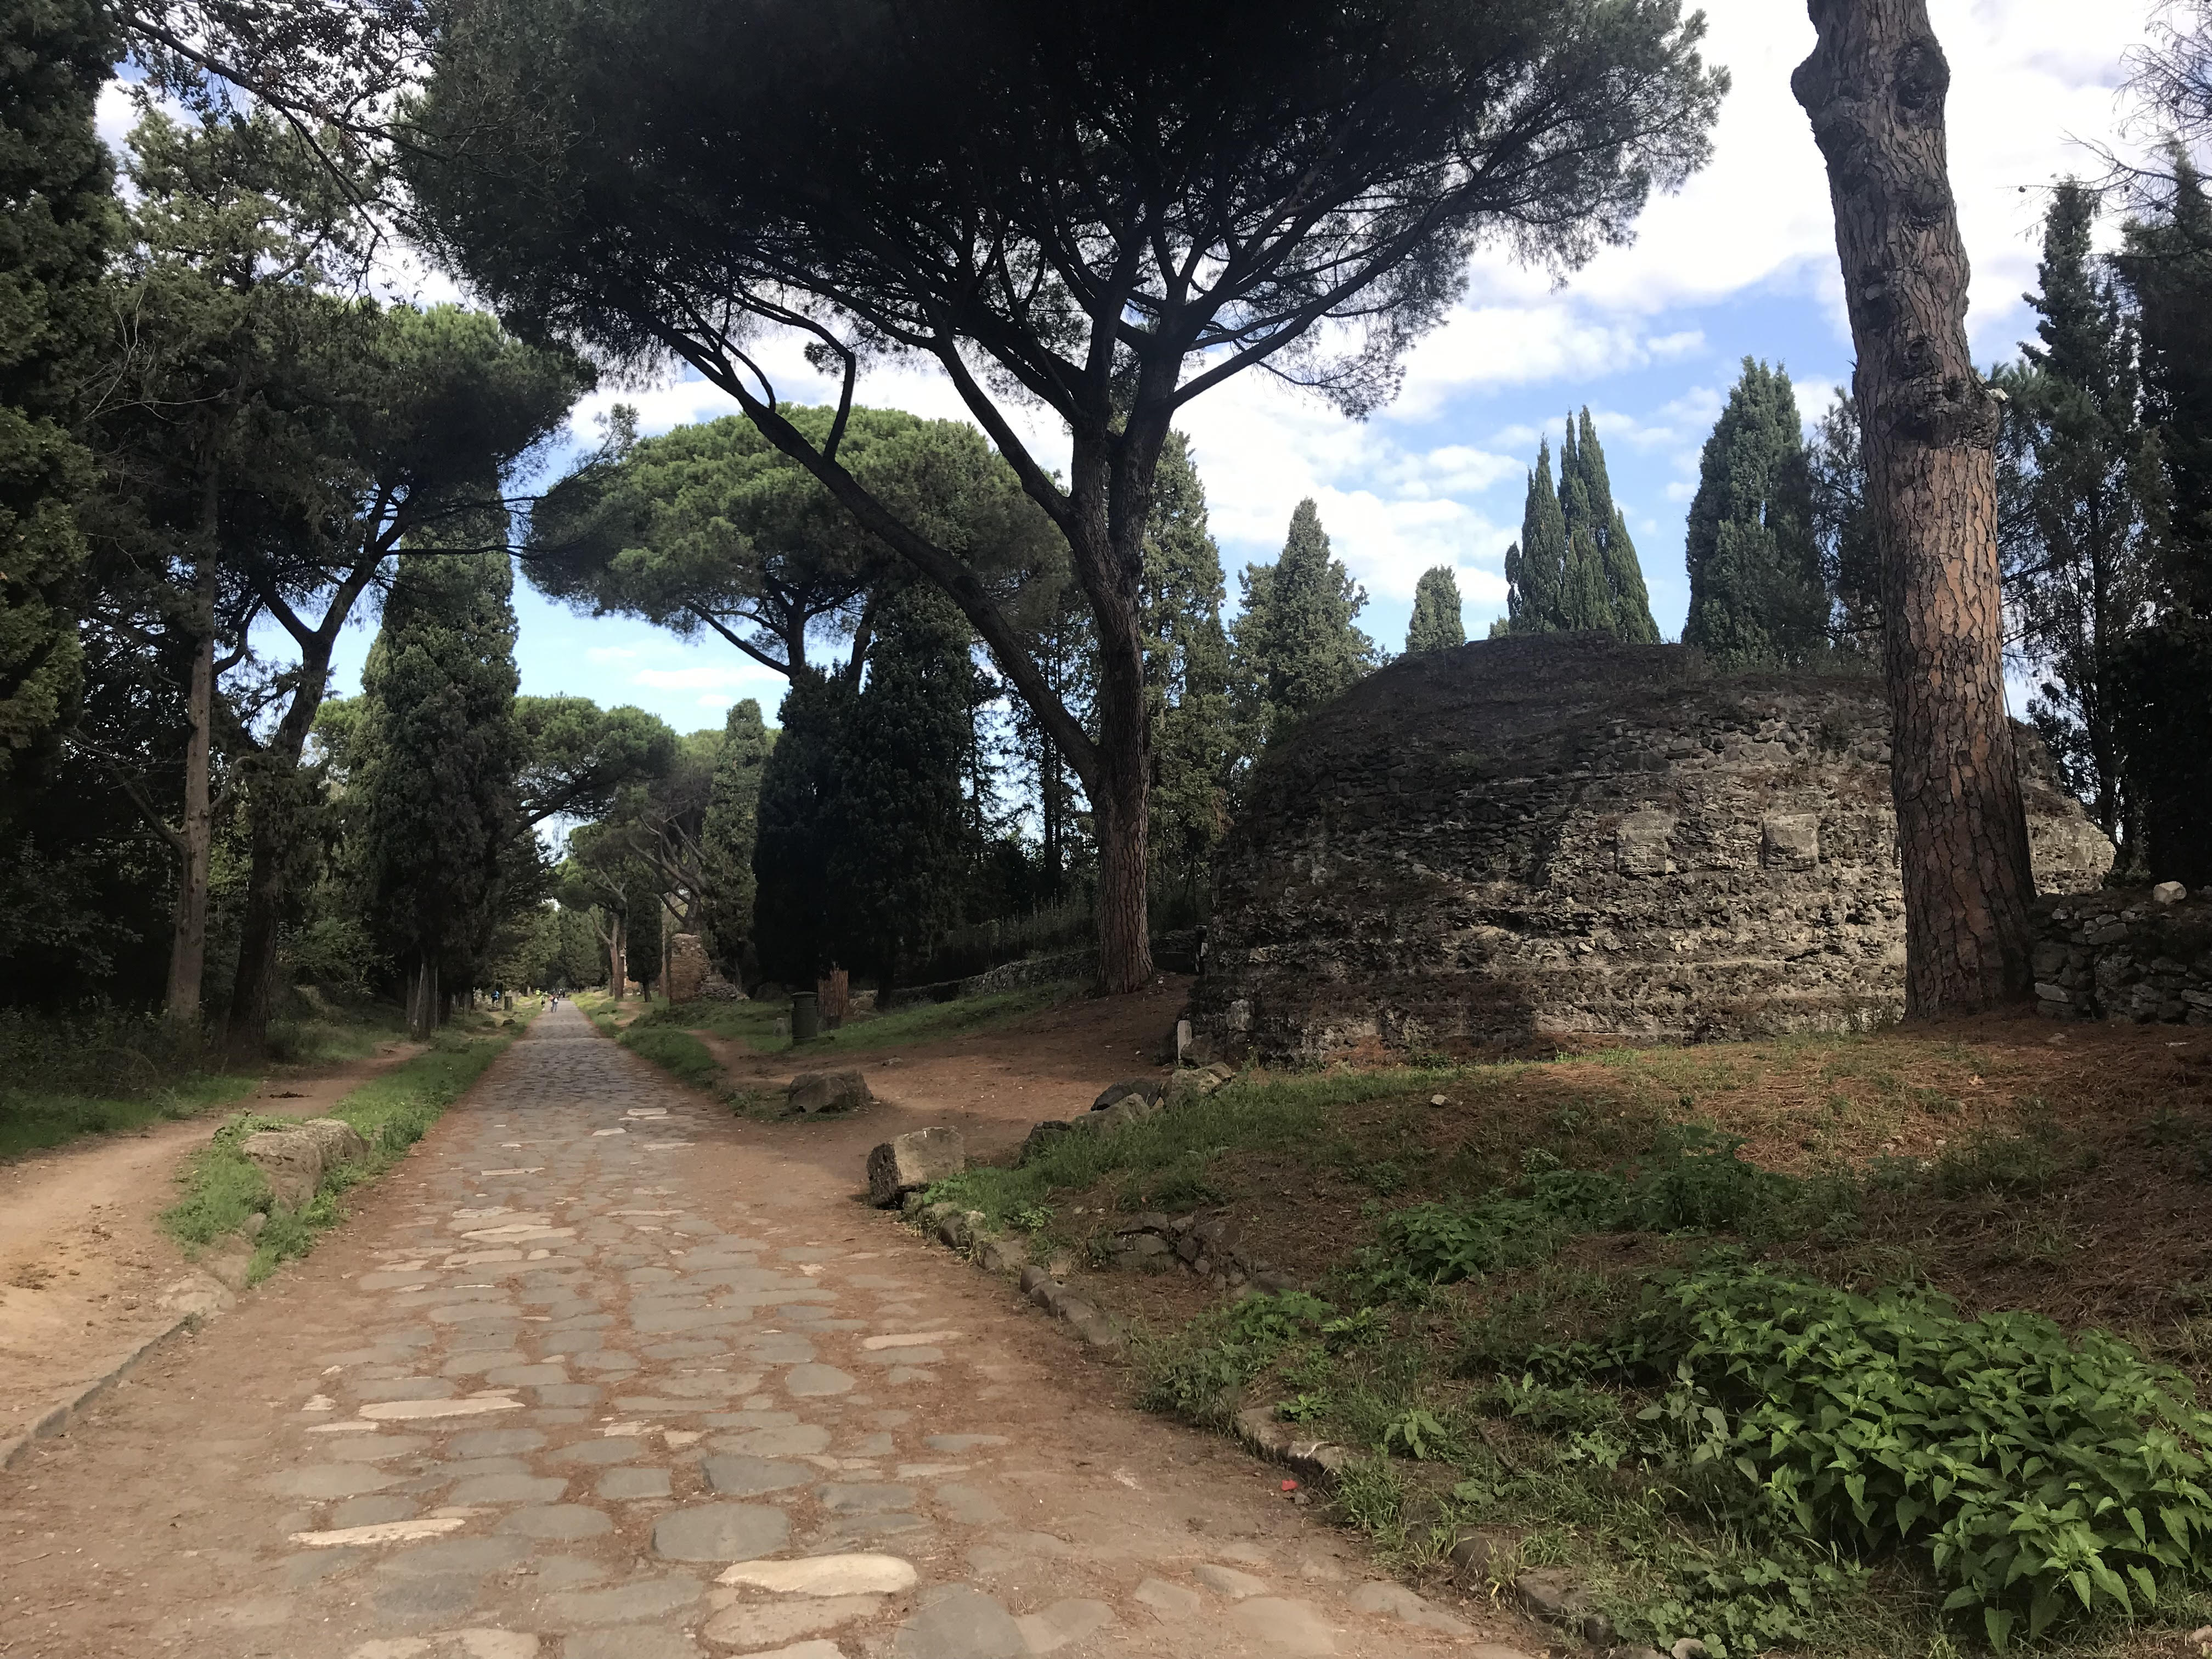 Via Appia - Great Reads